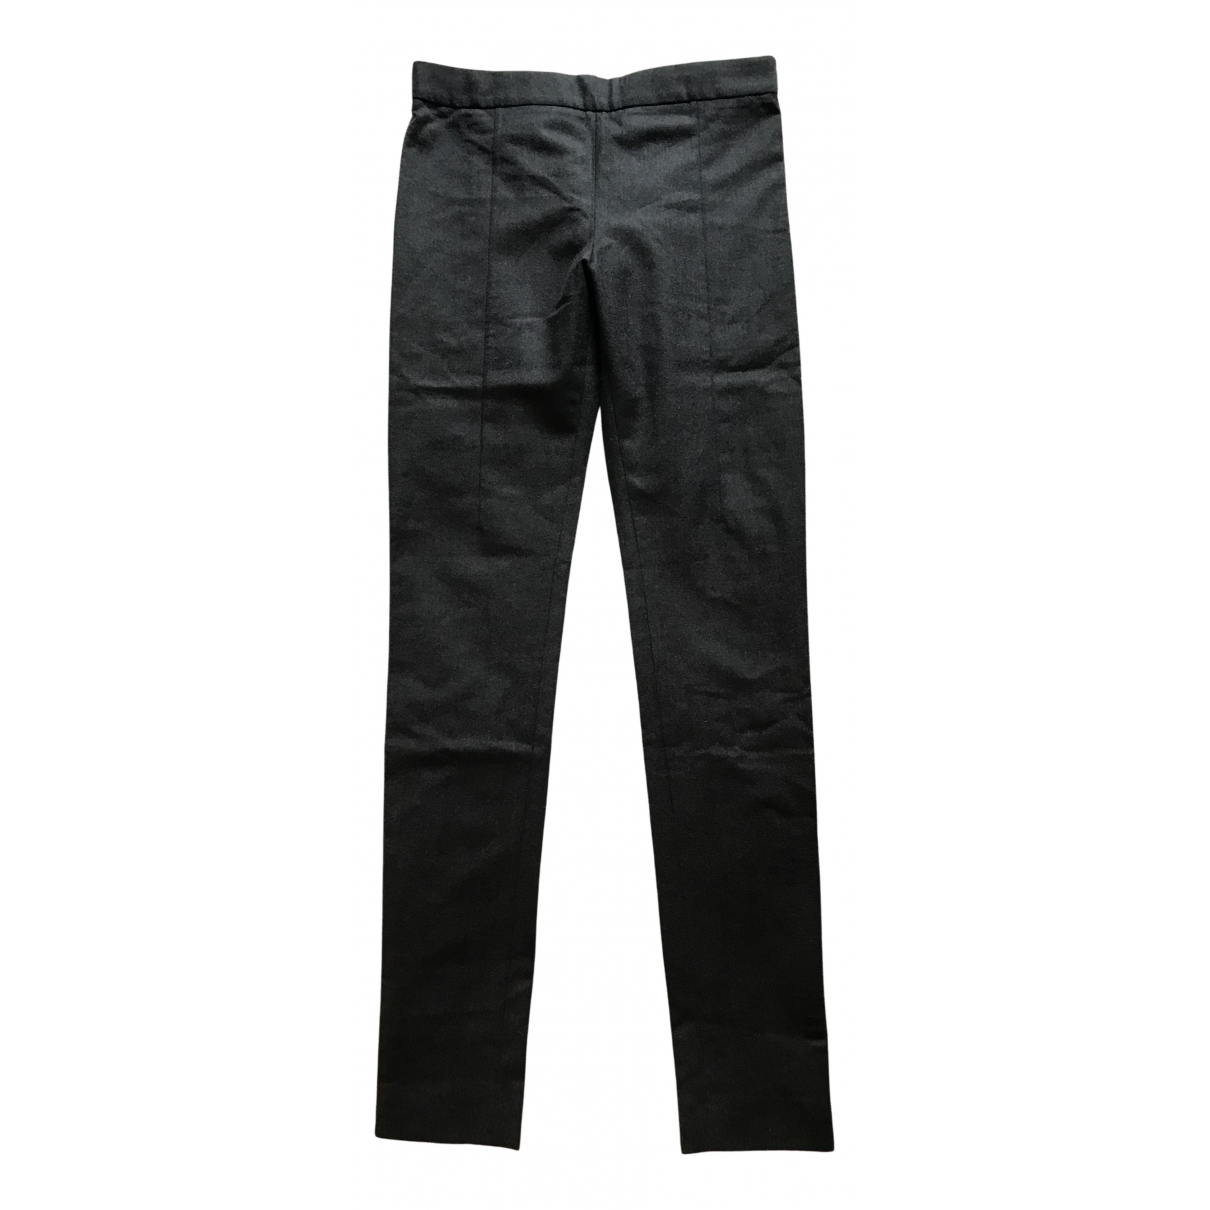 Acne Studios N Anthracite Wool Trousers for Women 36 FR